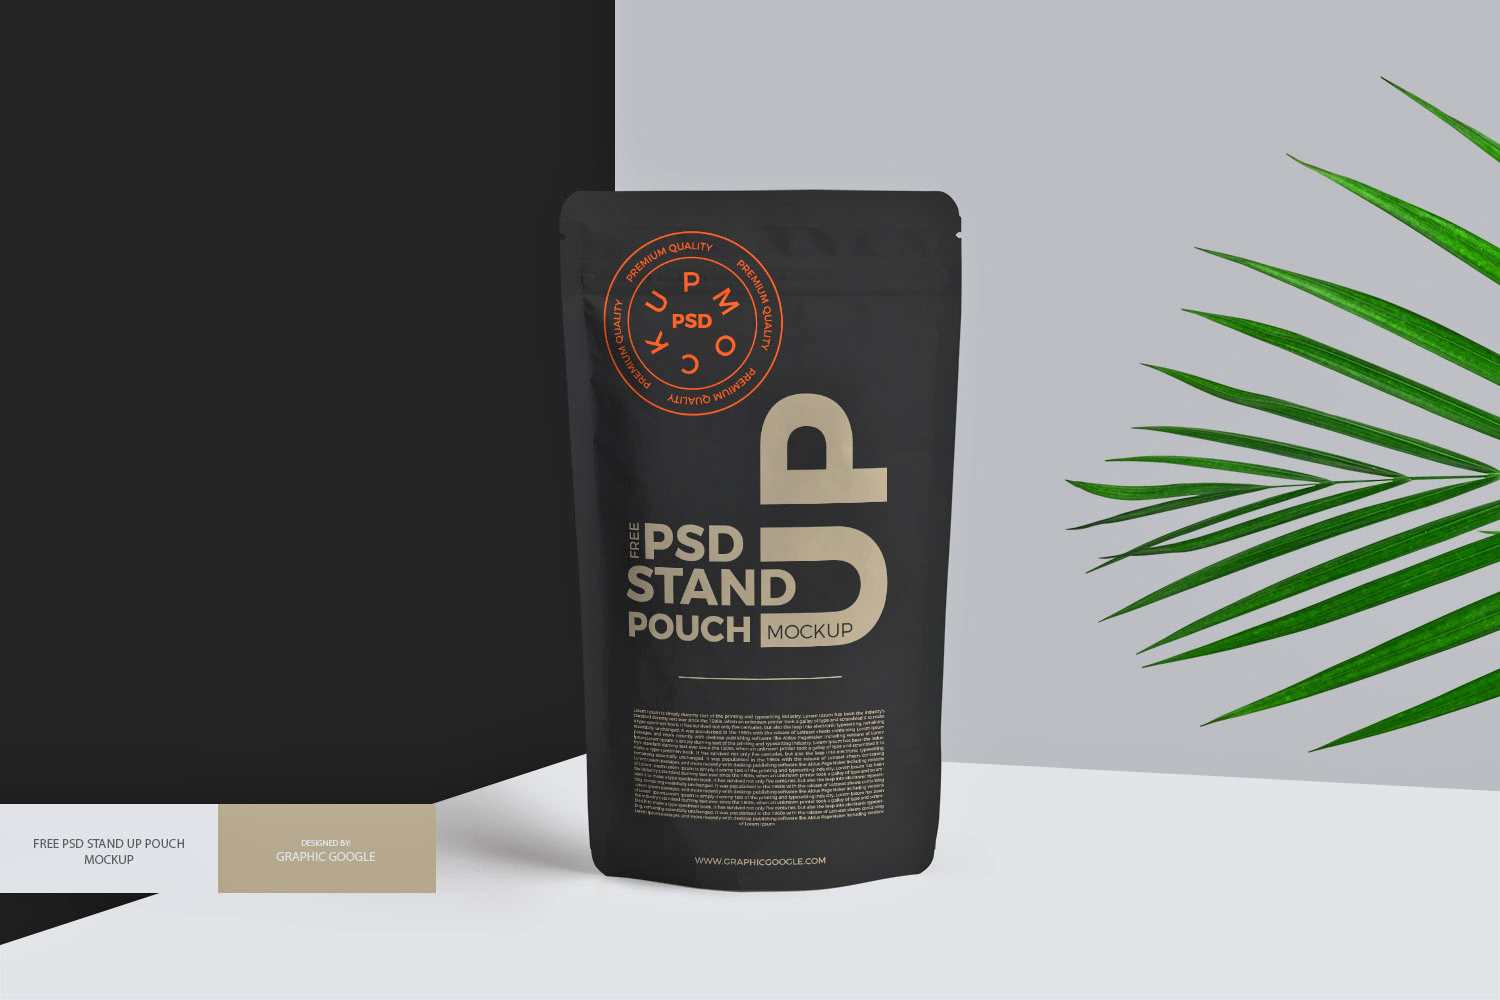 Stand Pouch Mockup Free PSD